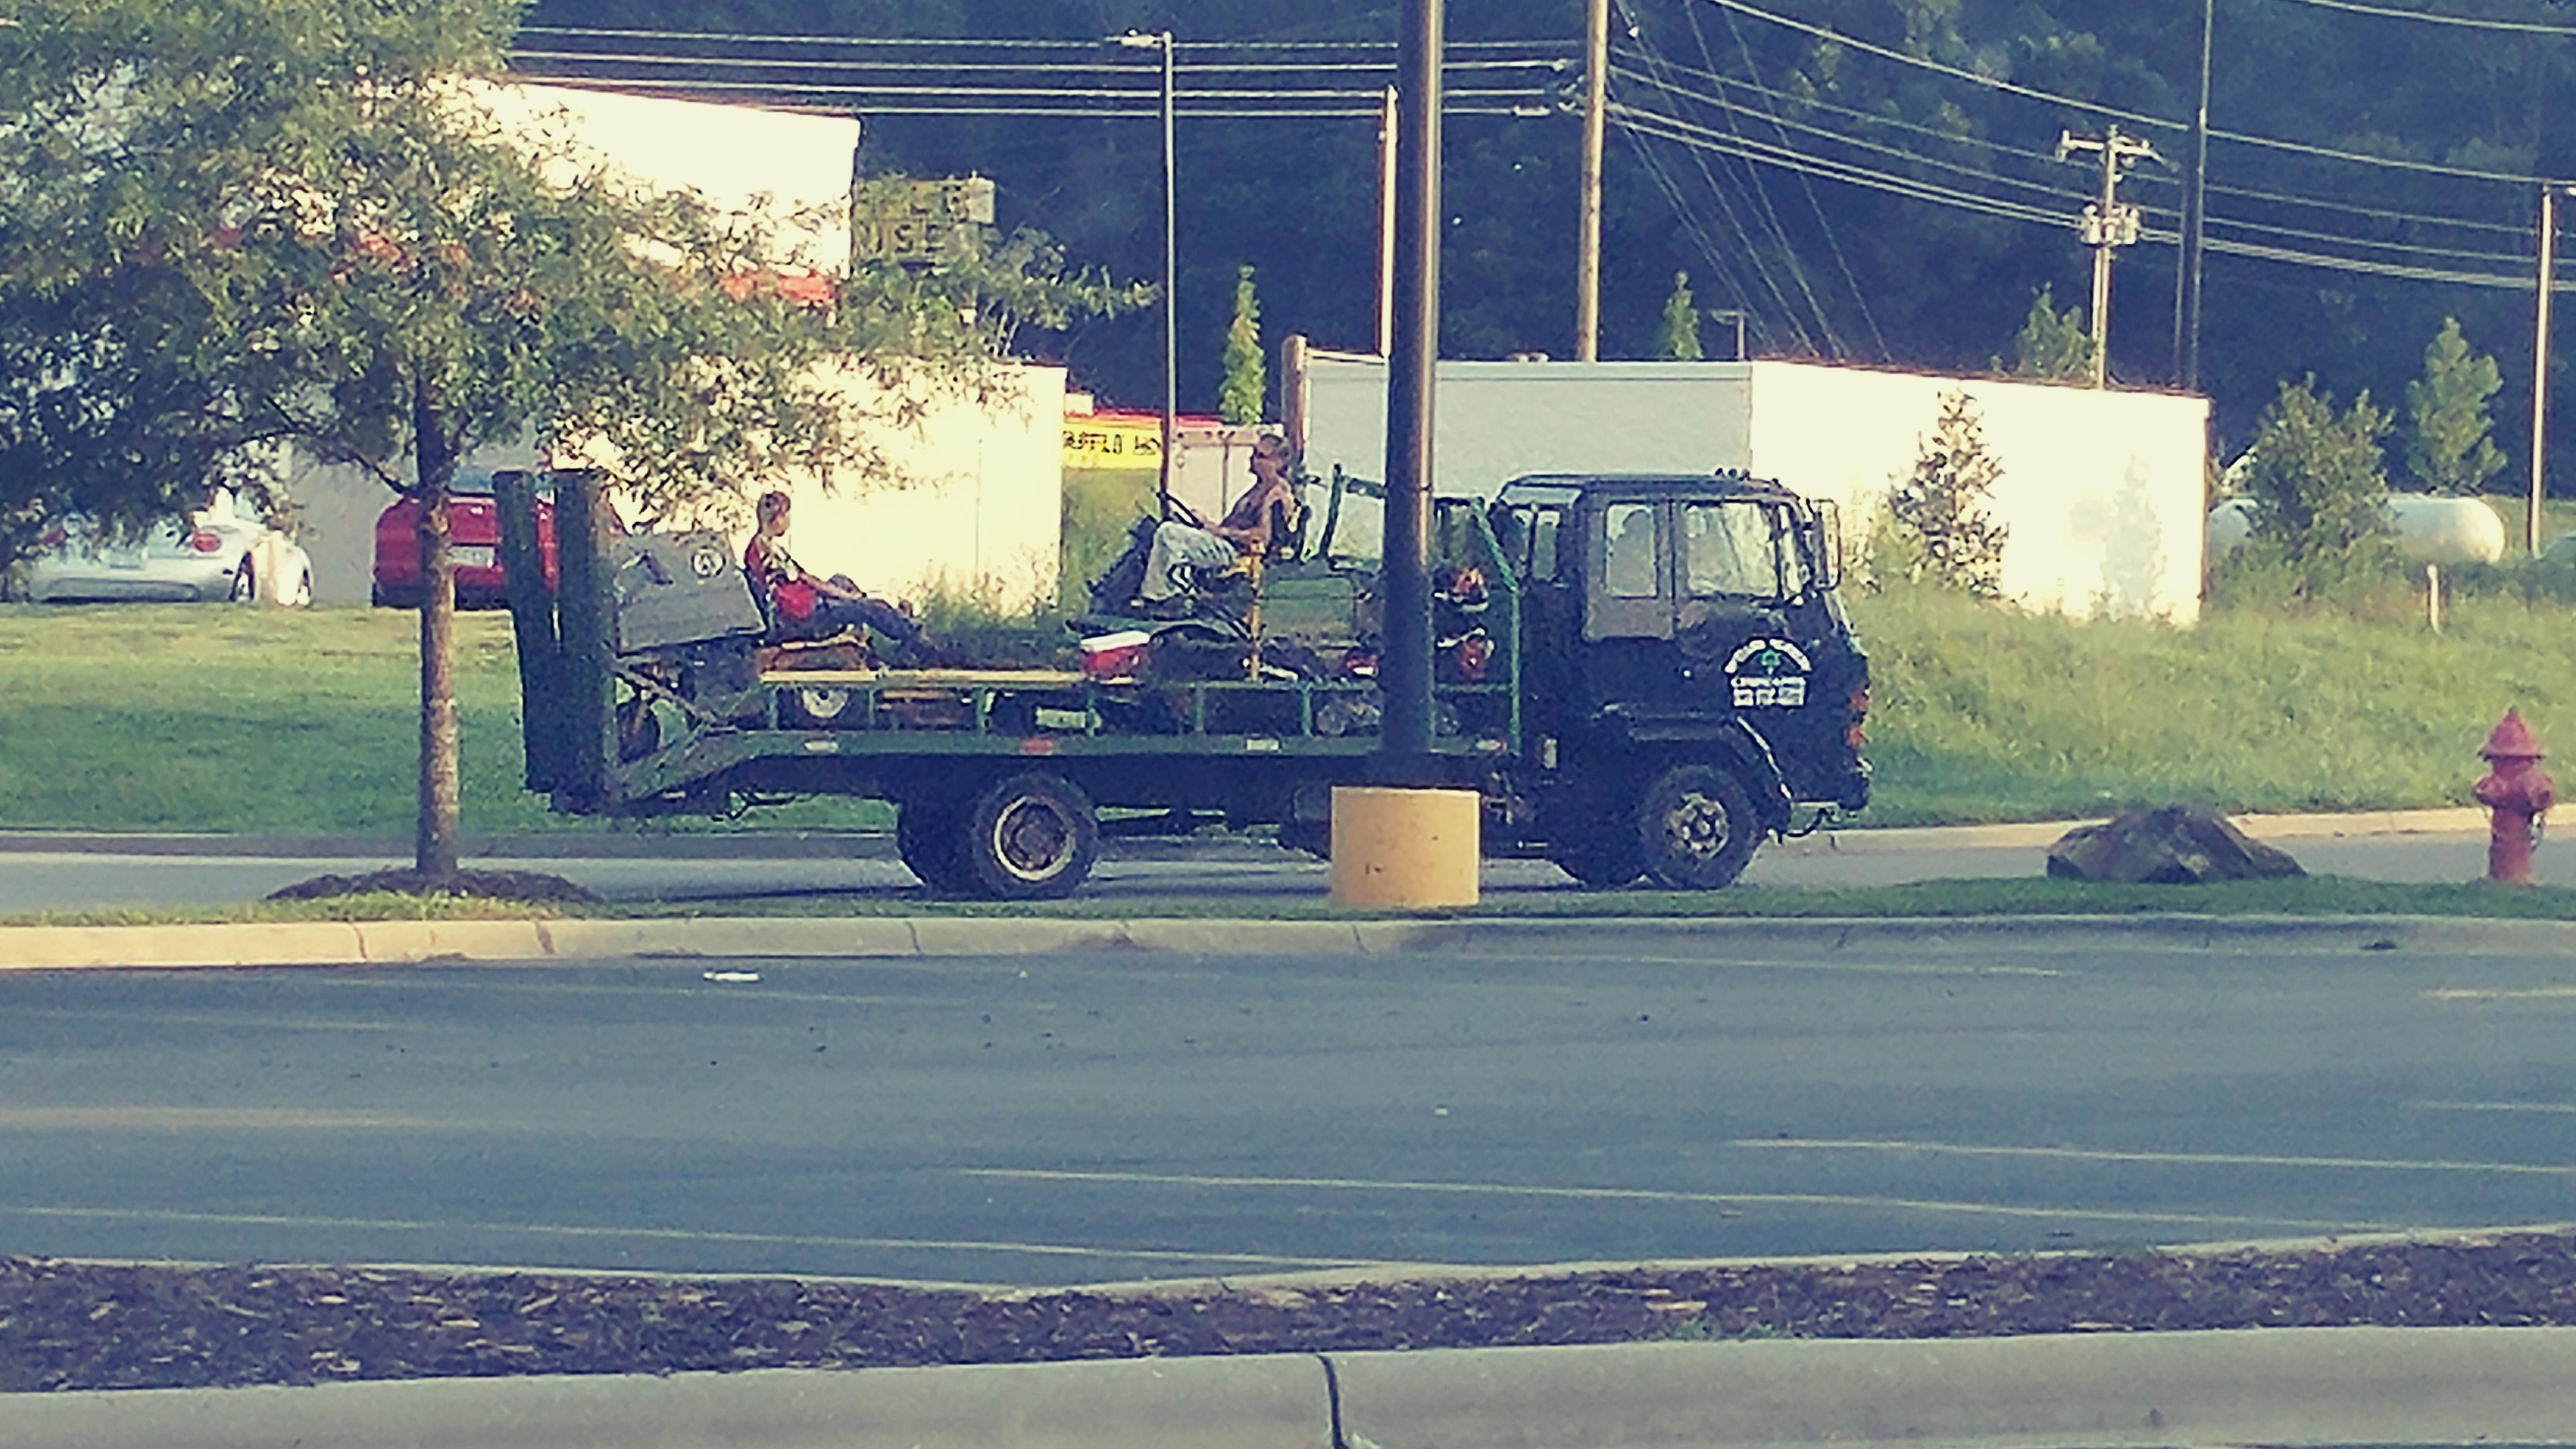 And they actually went onto the main road forklift osha